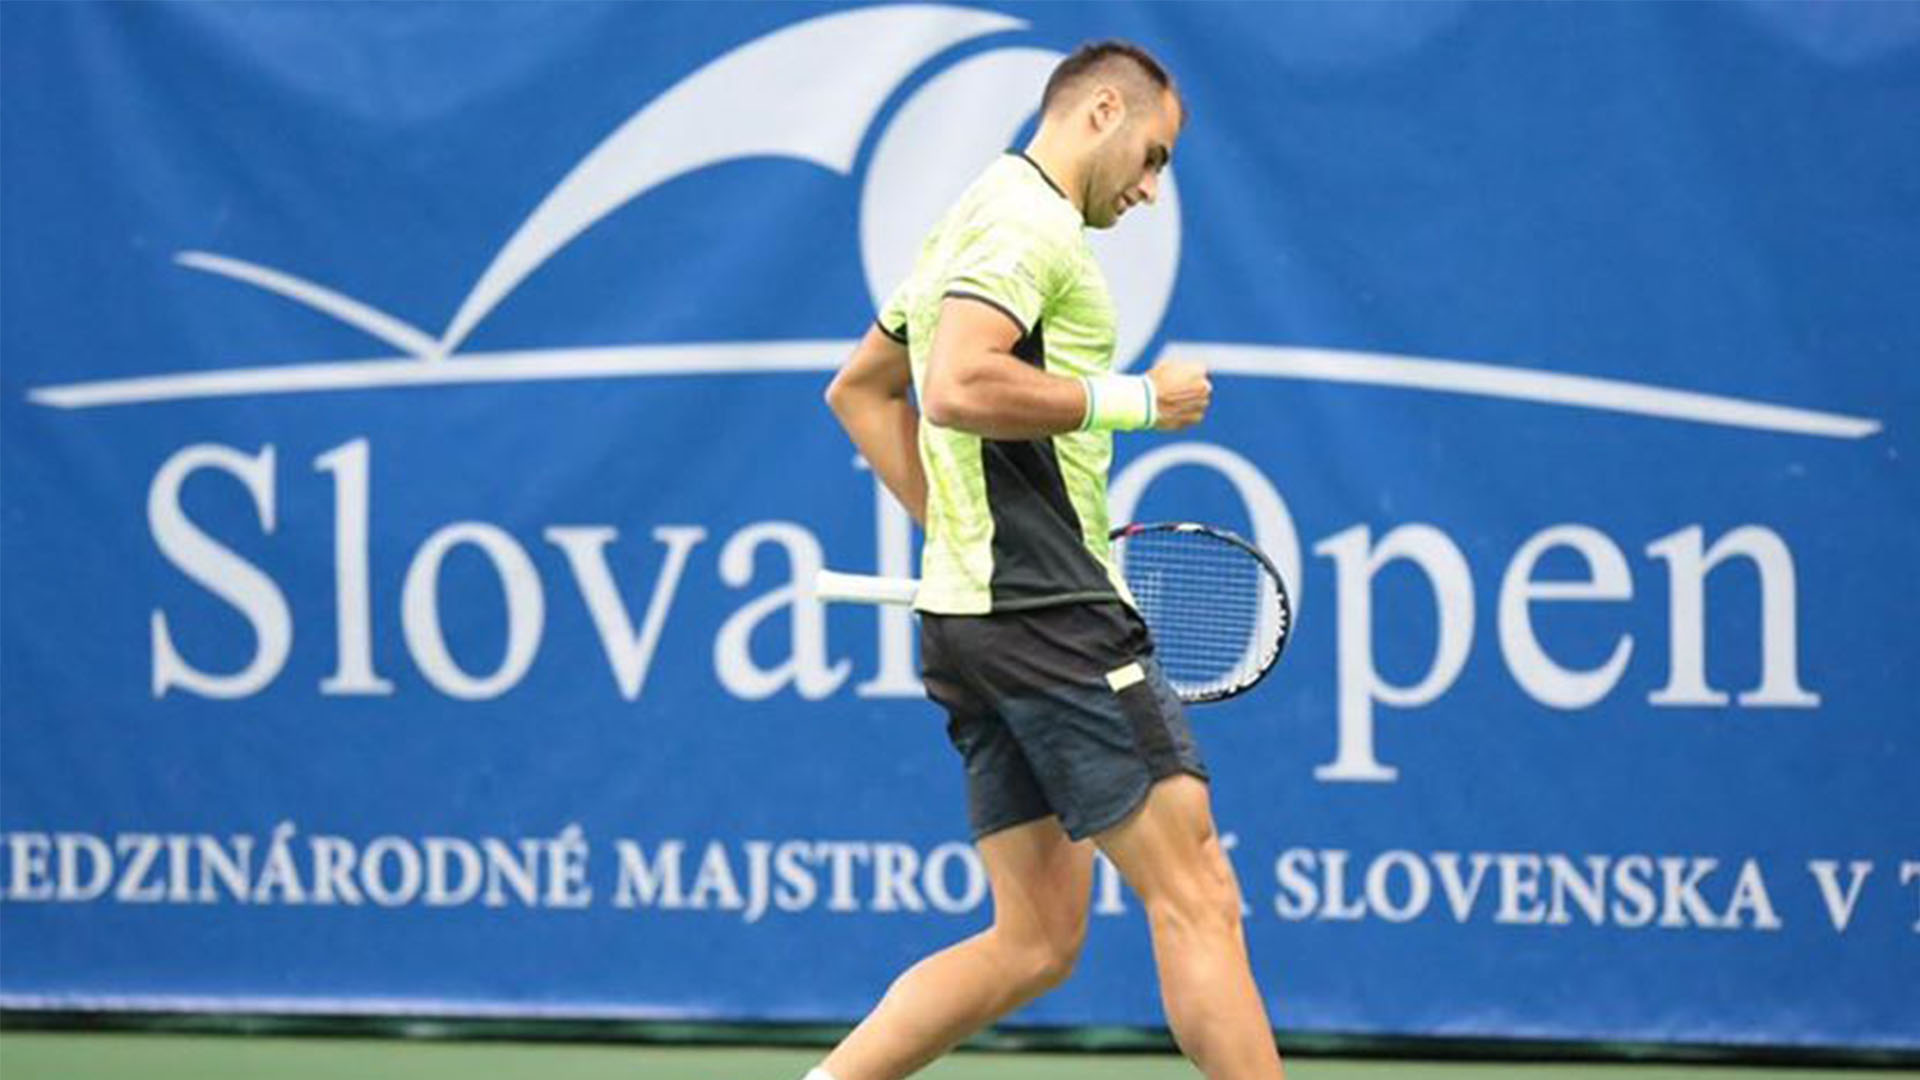 Marius Copil, final ATP Challenger Slovak Open 2017